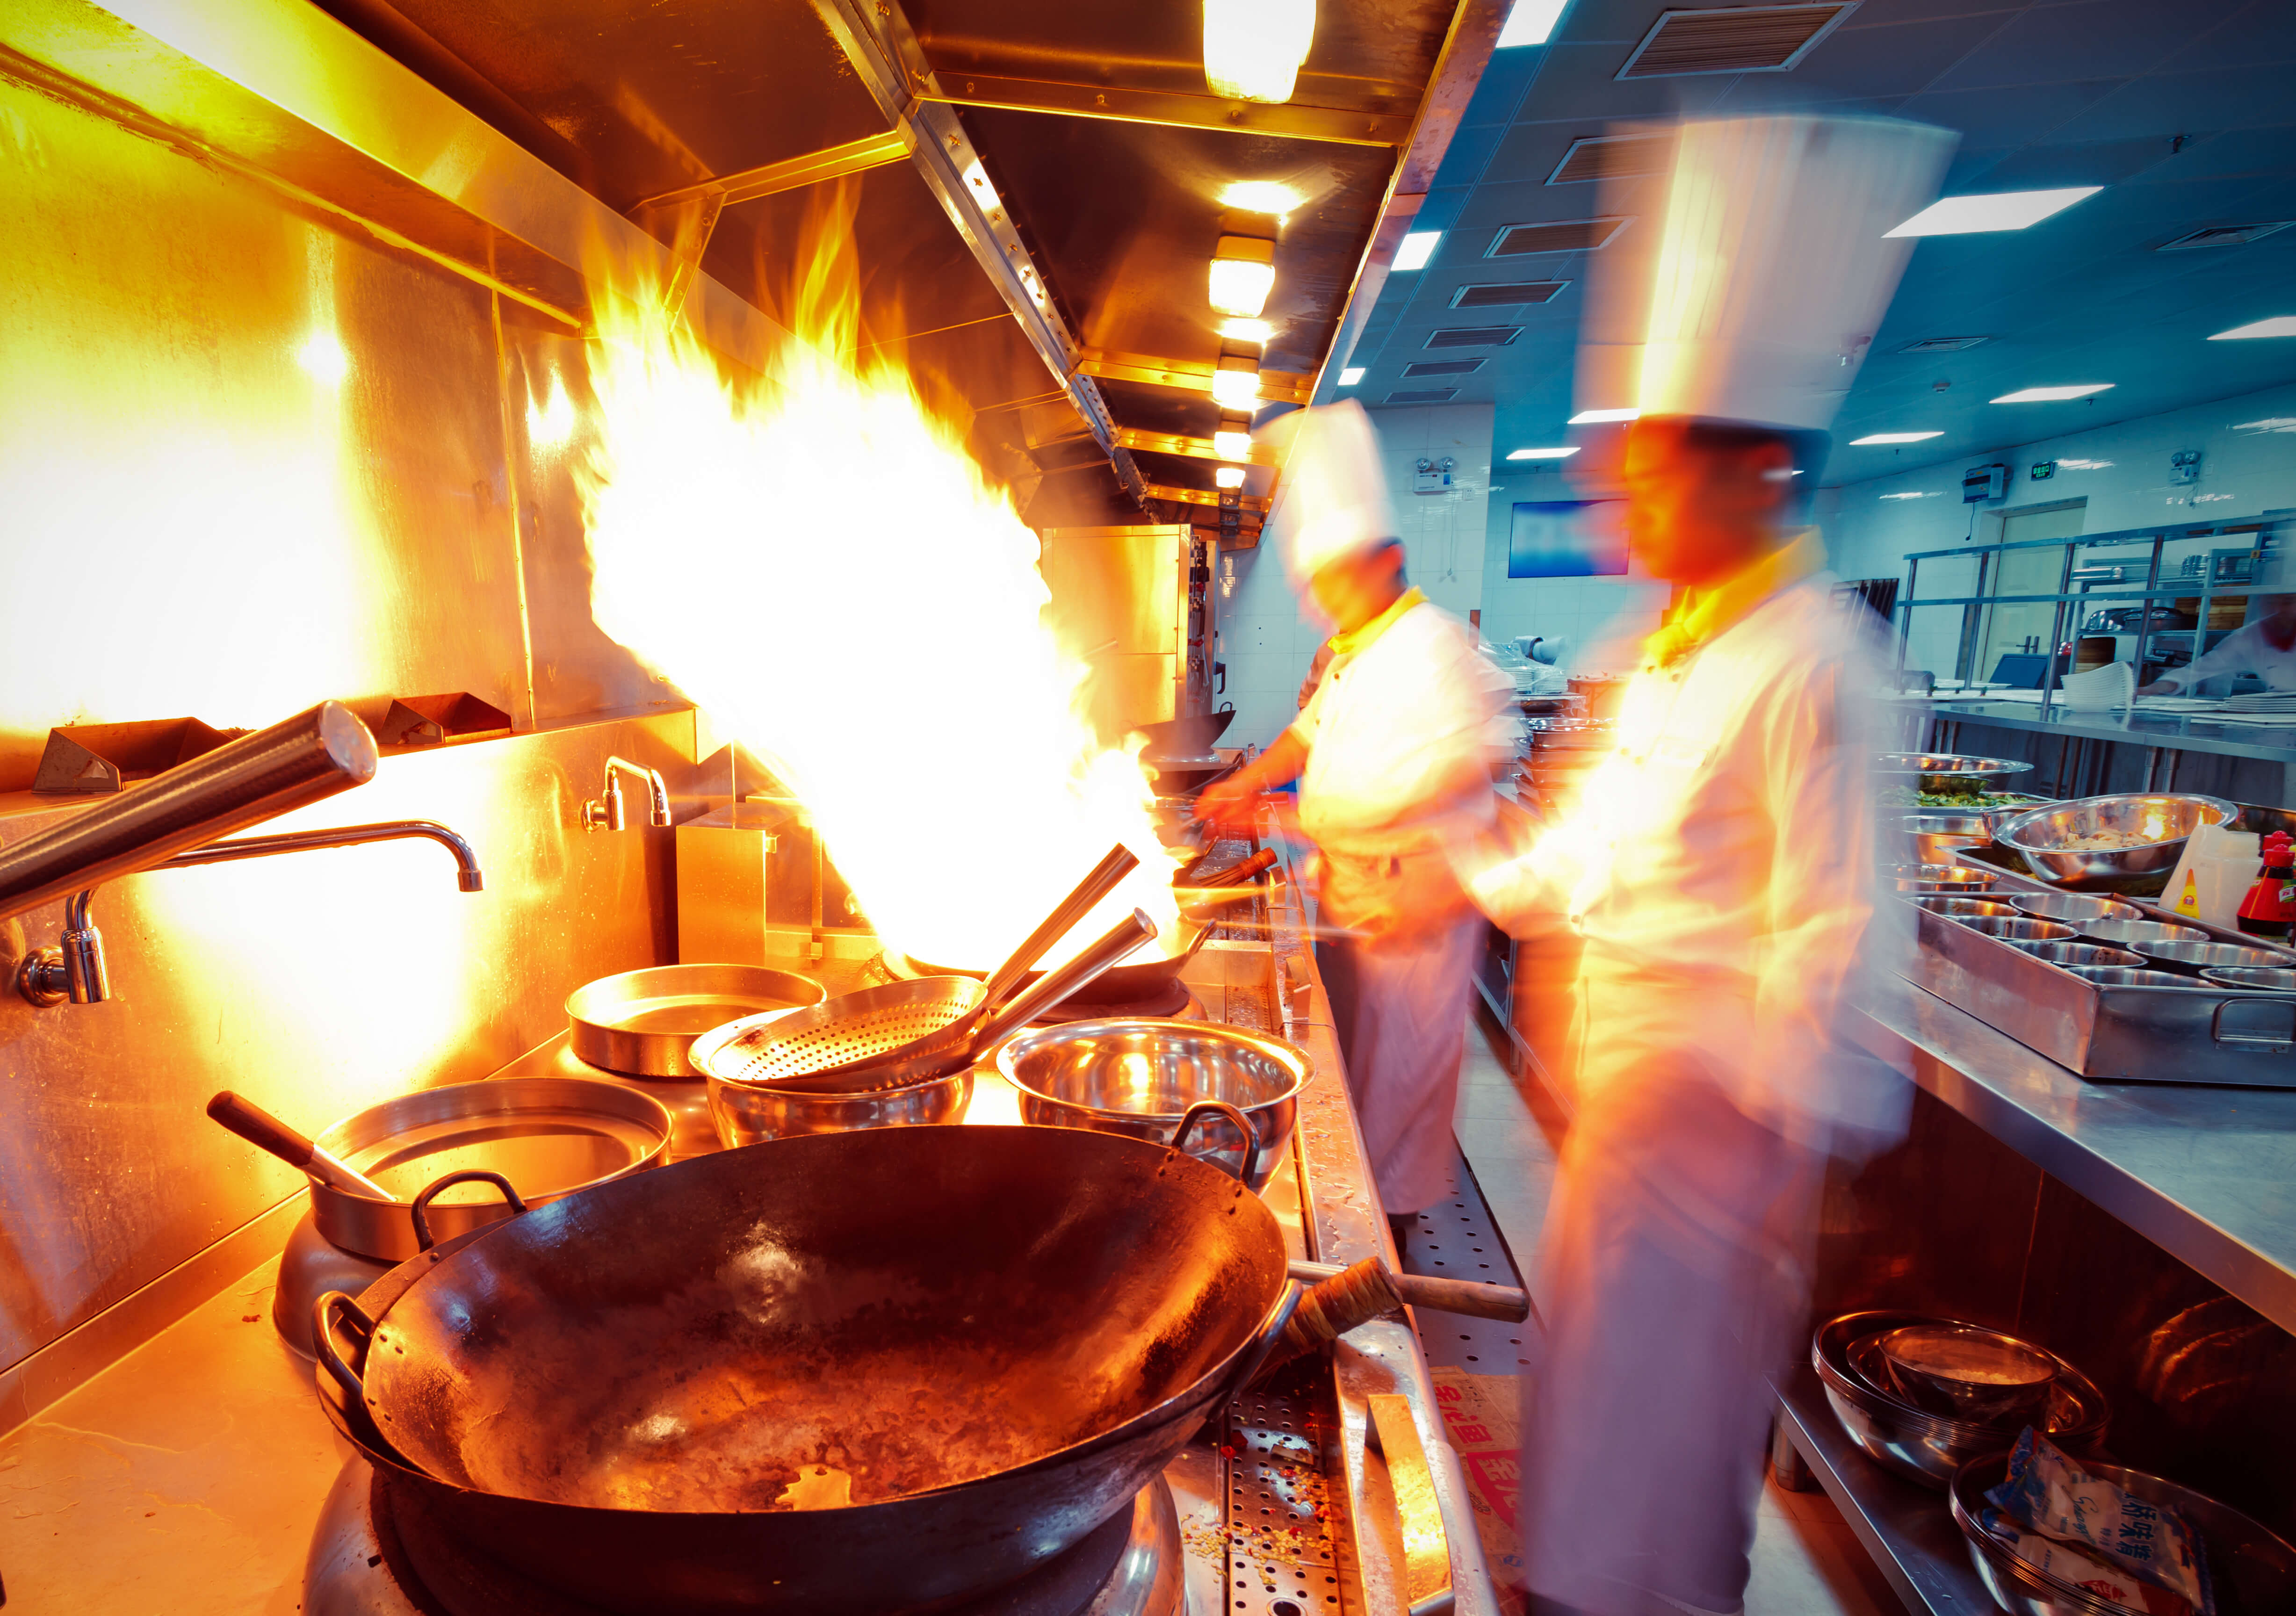 Authorities in a city in eastern China has deployed an AI system to catch cooks who are engaging in unhygienic behavior while in the kitchen. Source: Shutterstock.